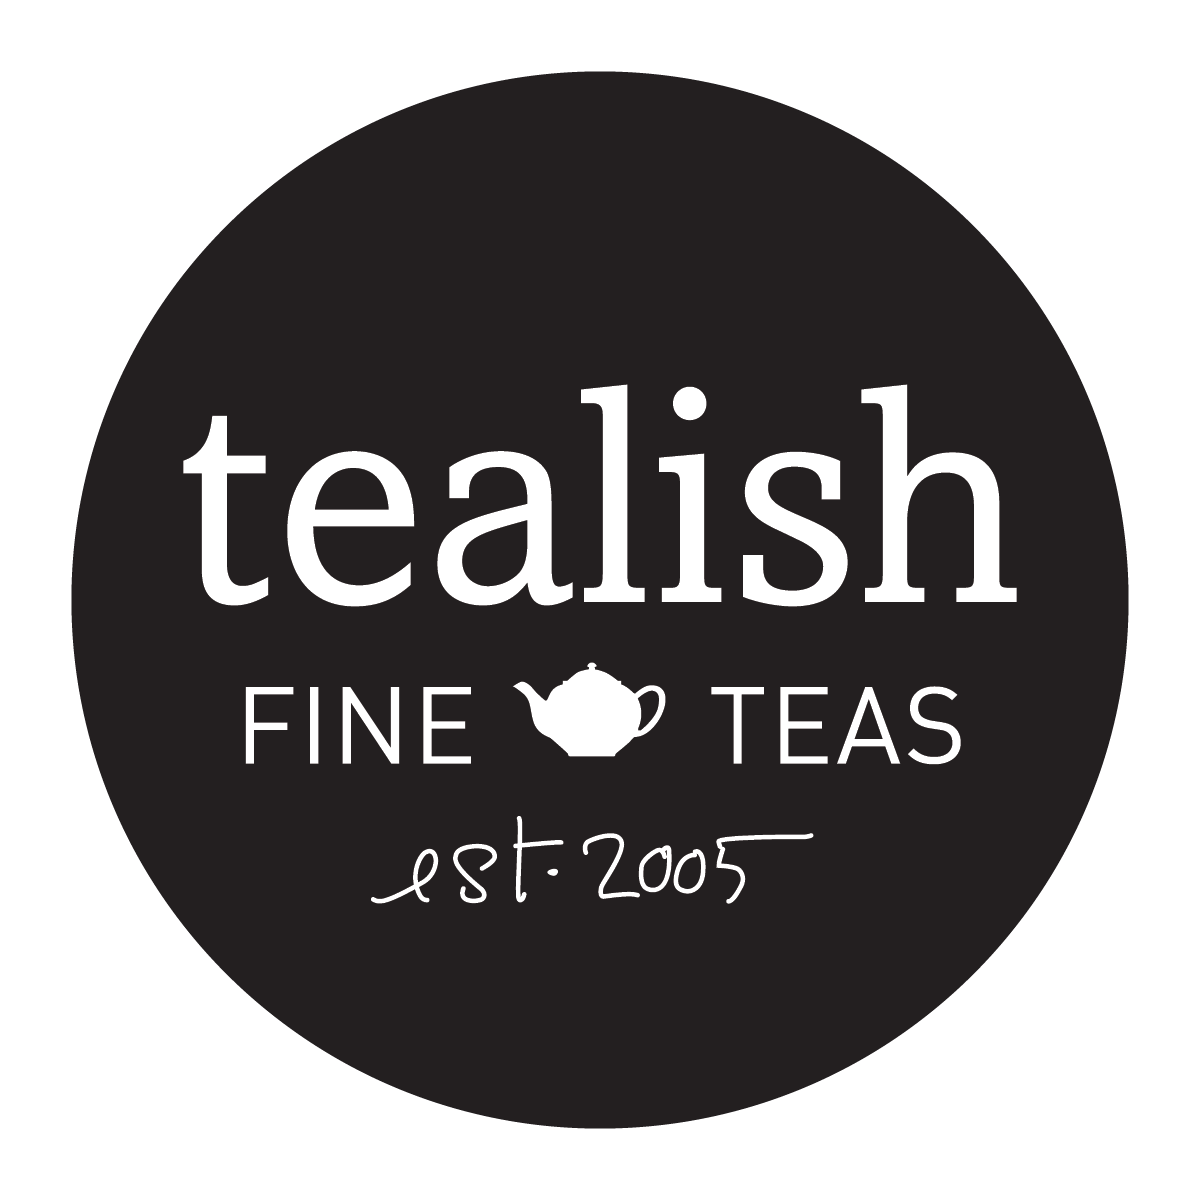 Tealish Logo